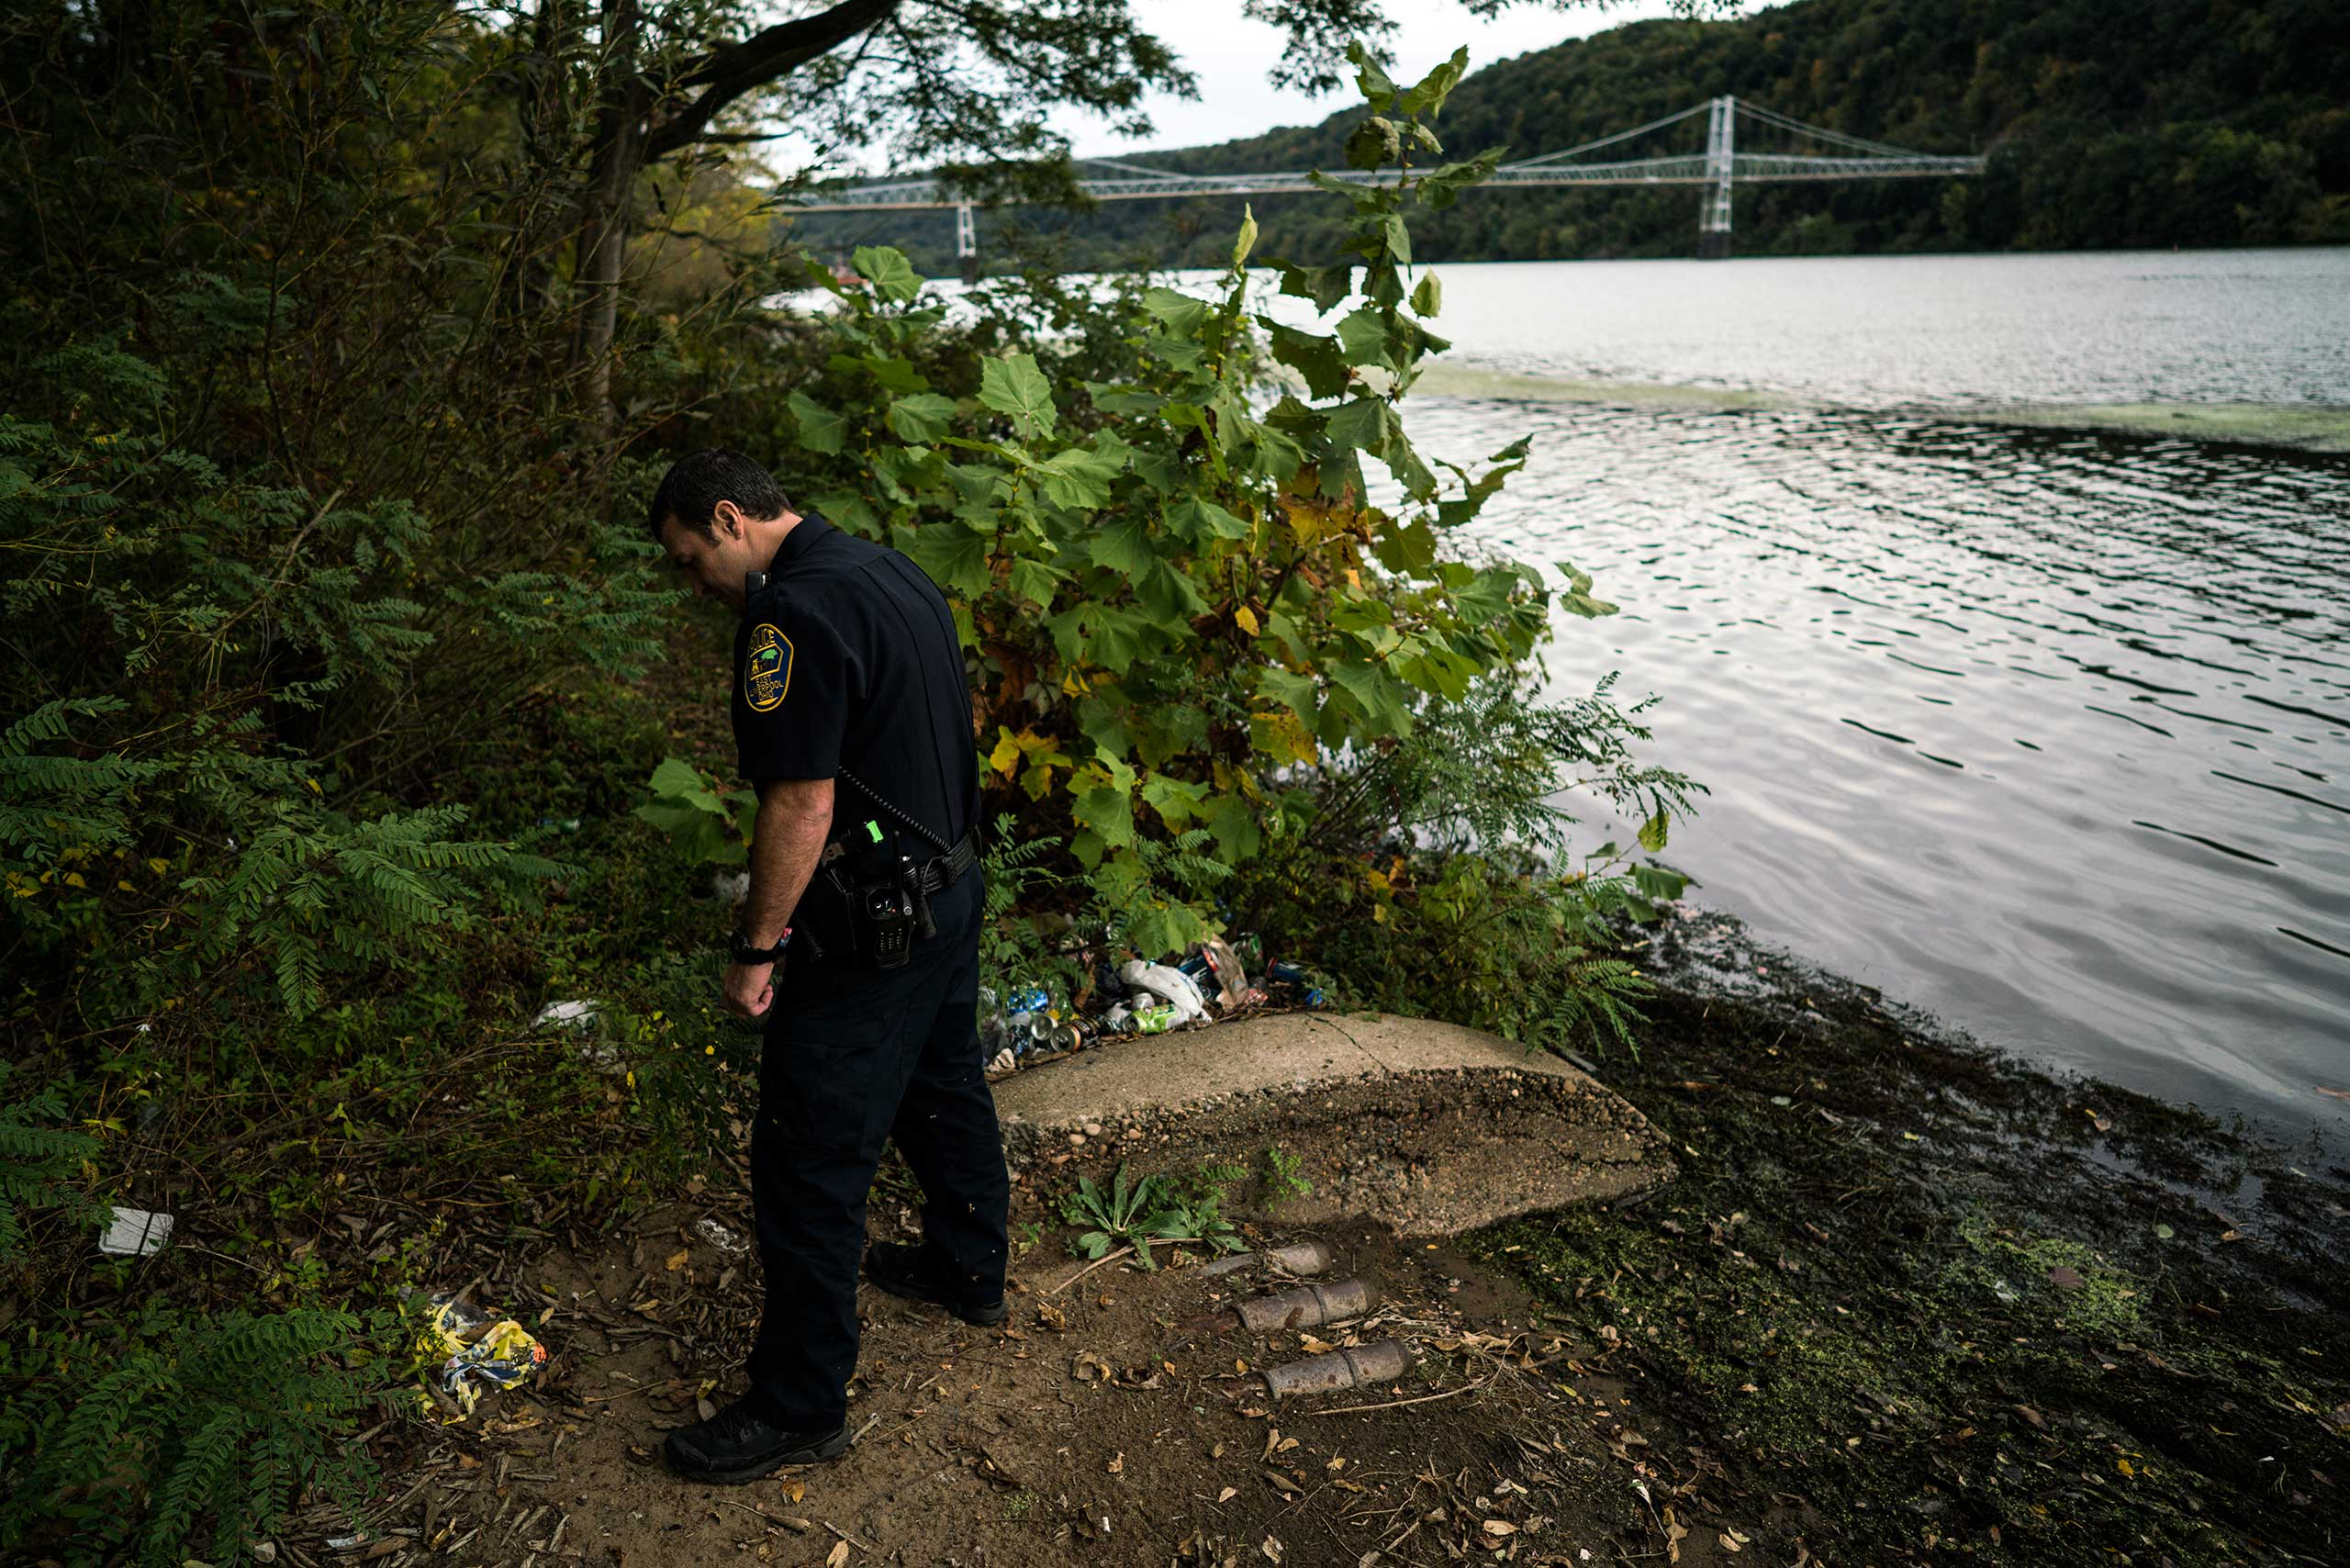 A patrolman searches for syringes and abandoned drug paraphernalia along the shore of the Ohio River in East Liverpool, Ohio, on Oct. 8, 2016.